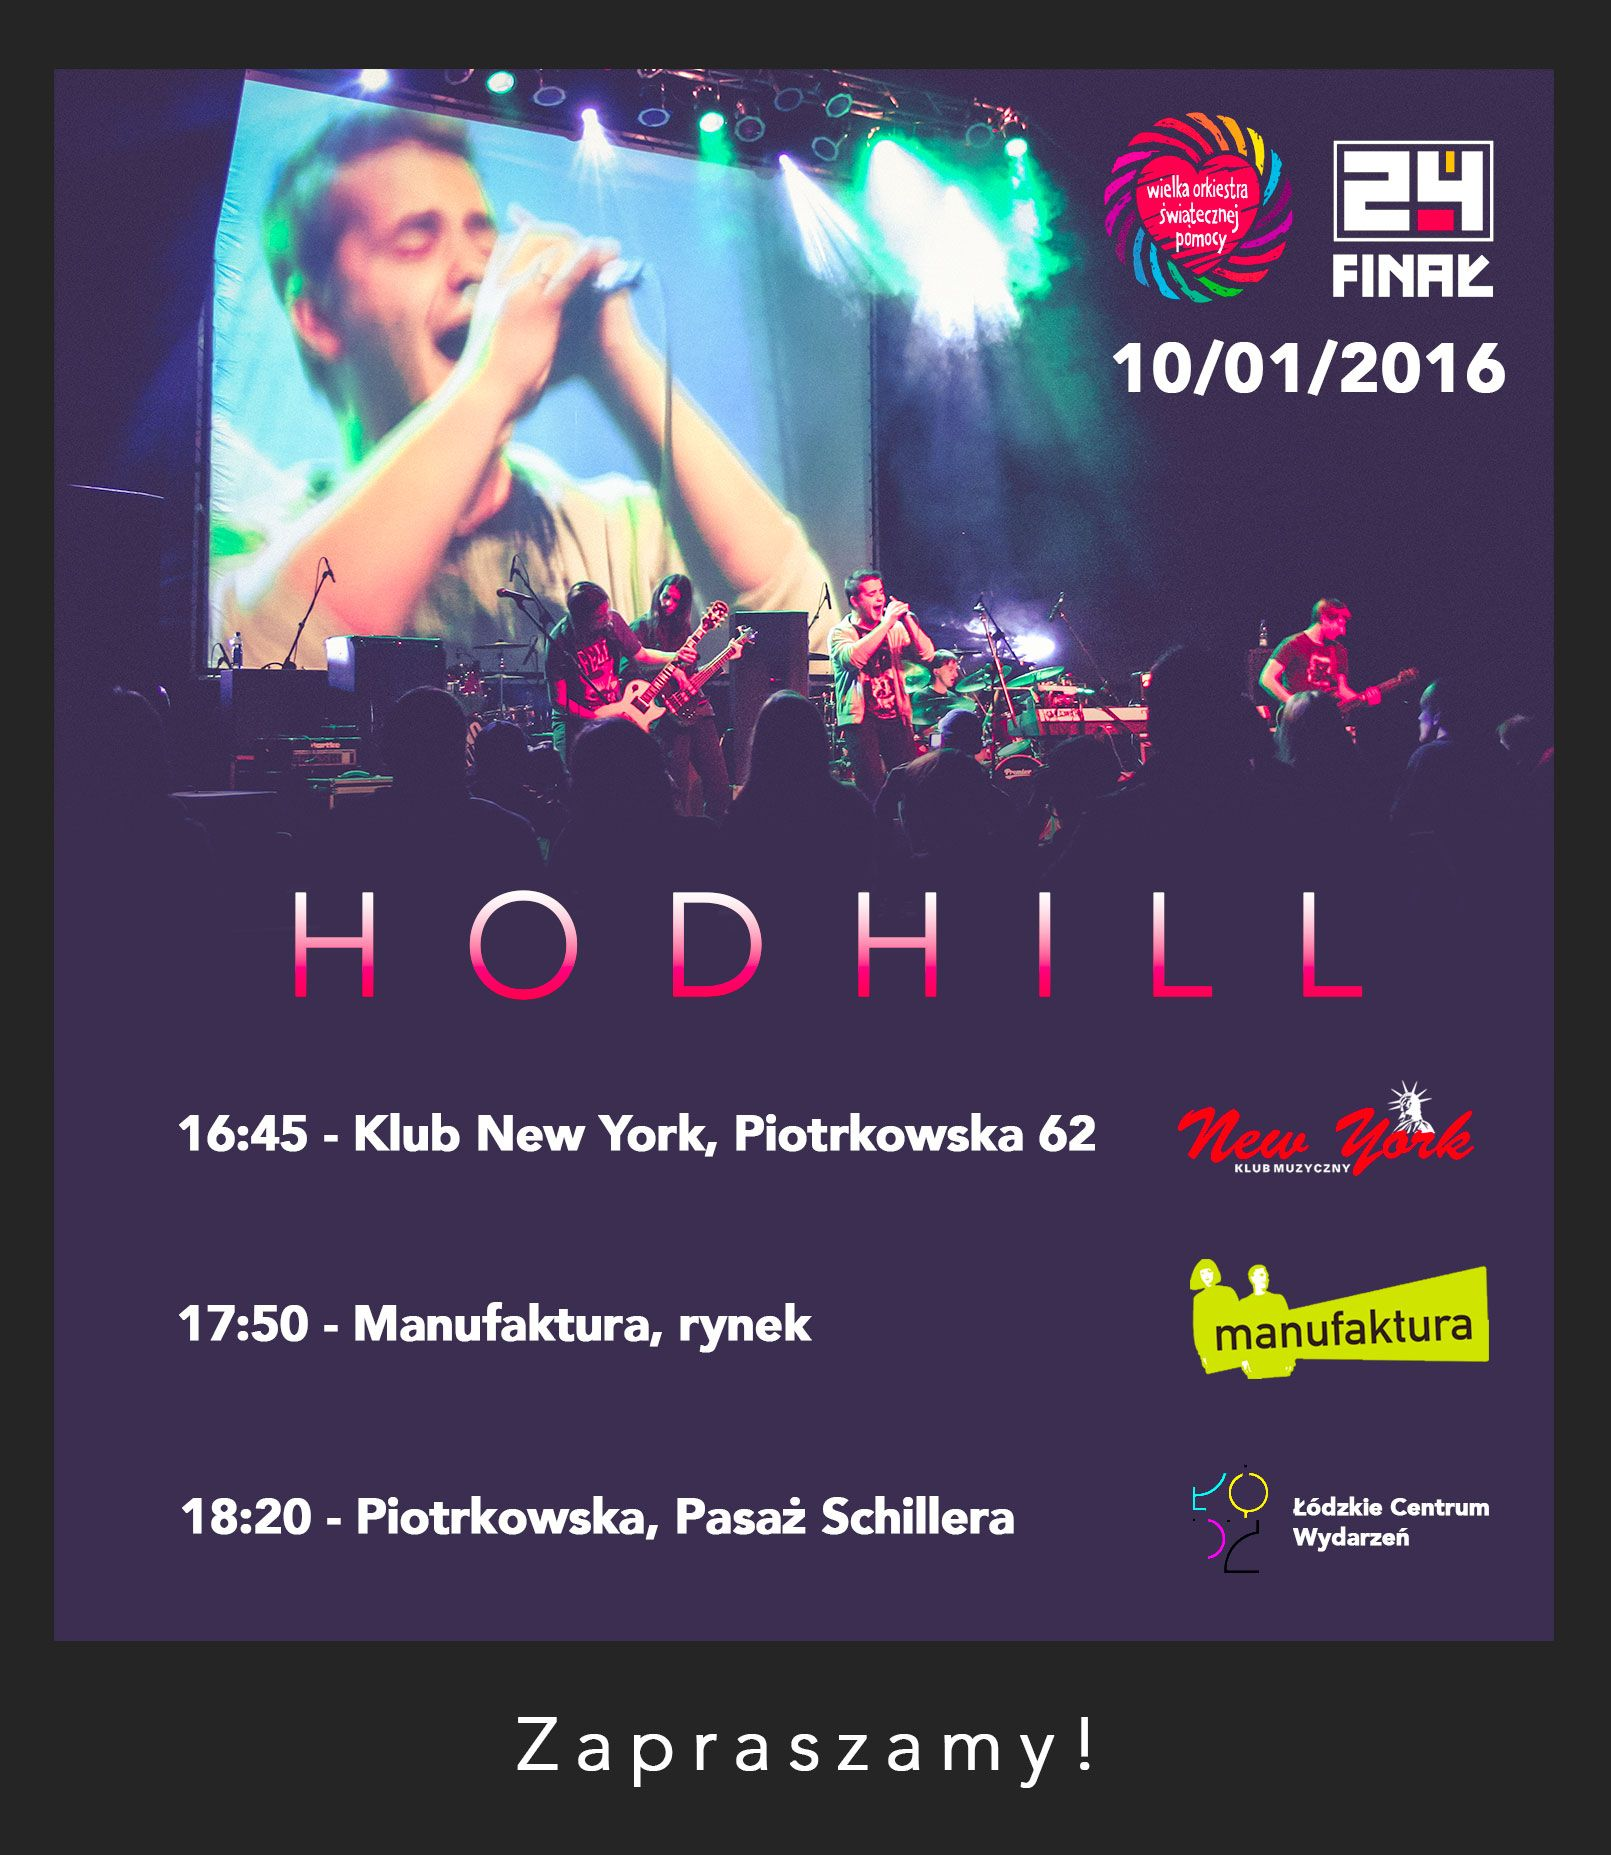 hodhill-wosp2016-copy